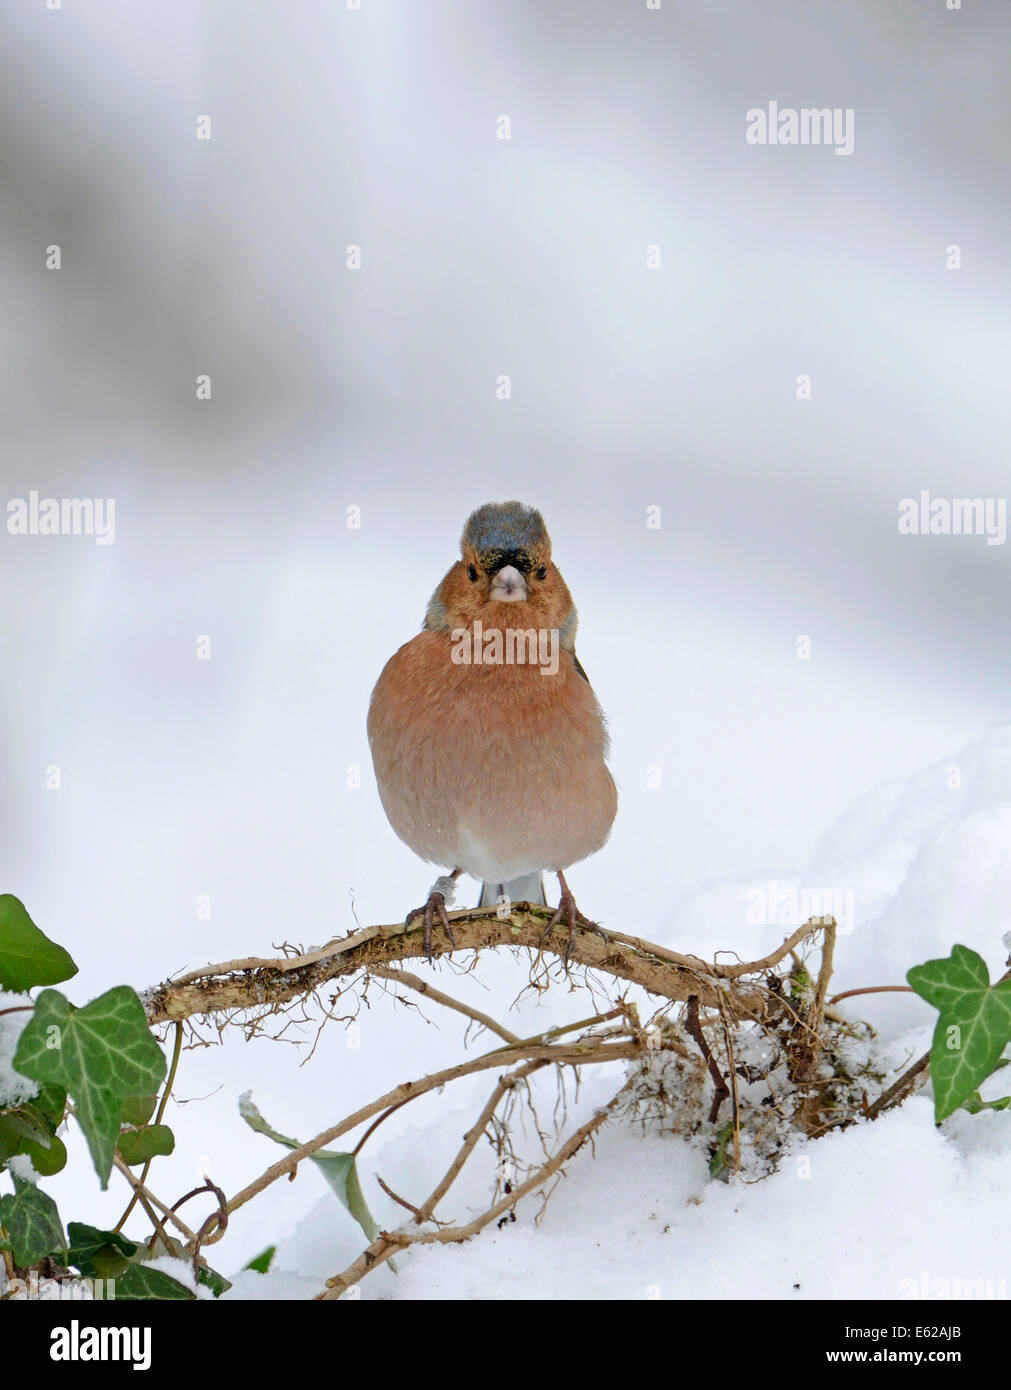 Chaffinch Fringilla coelebs in snow Norfolk winter - Stock Image